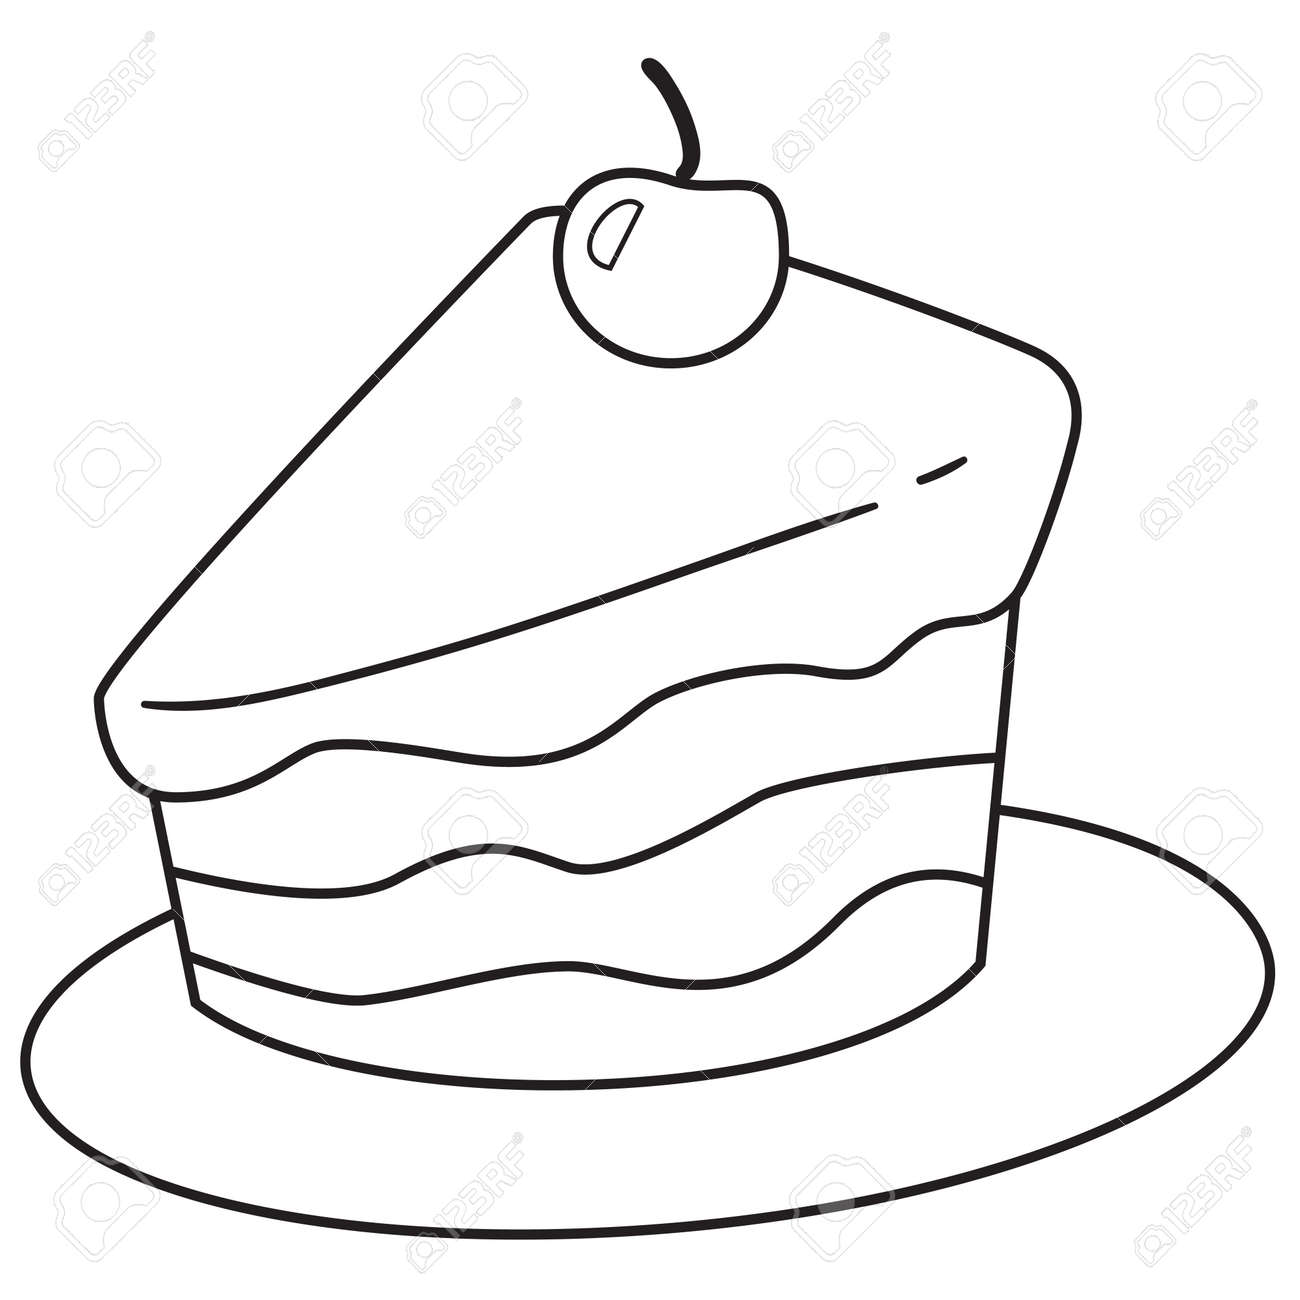 Vector Illustration Of Cake Slice In Black And White Outlined ... for Drawing Cake Slice  183qdu